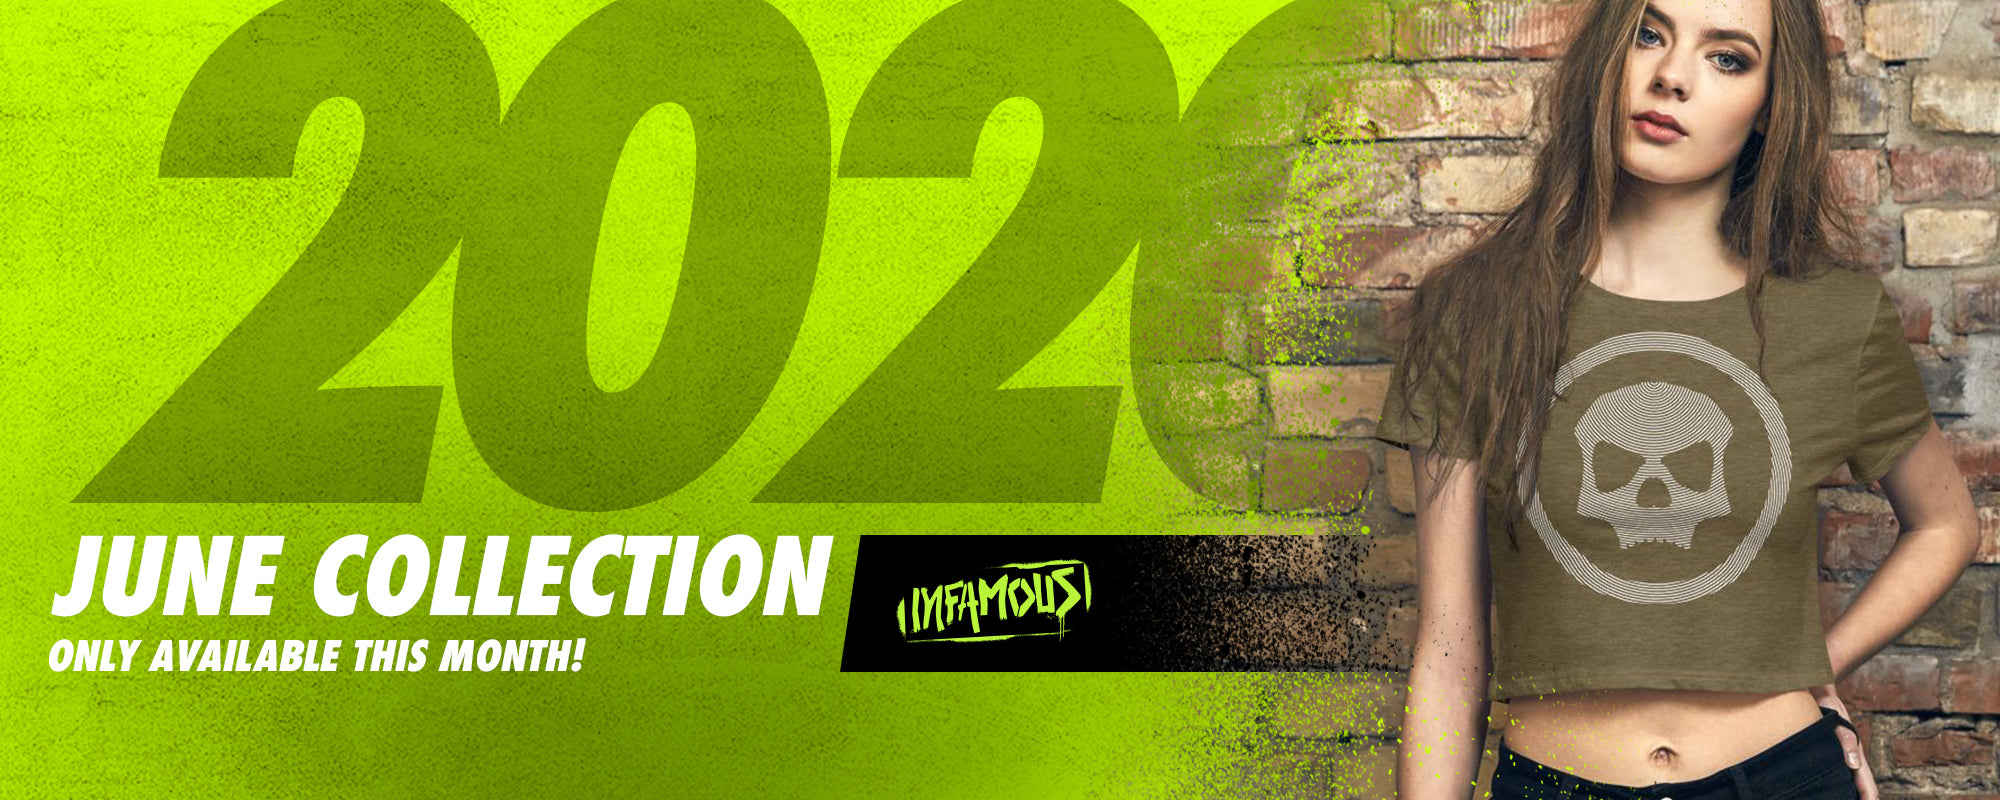 Infamous Paintball Apparel June 2020 Collection